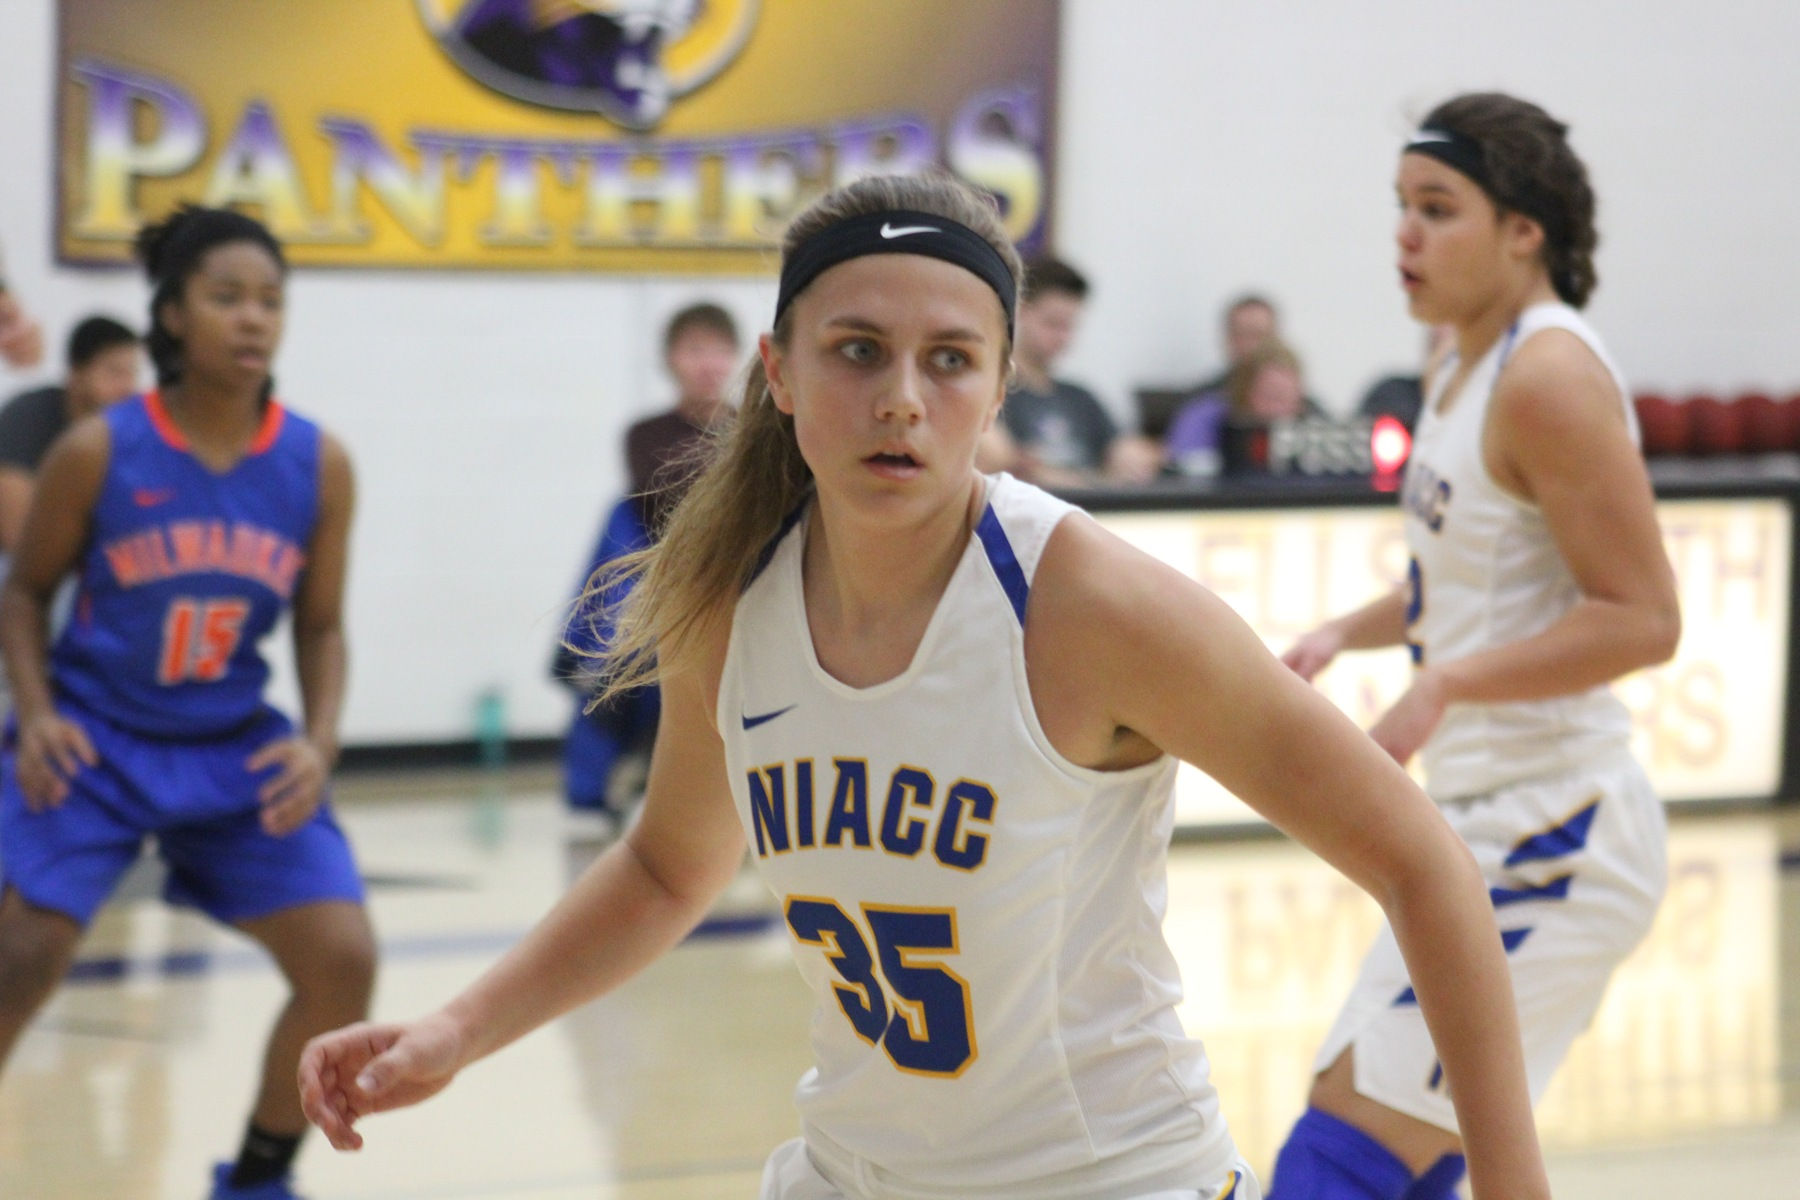 NIACC's Kelsie Willert plays defense in first half of Friday's game against Milwaukee Area Tech.